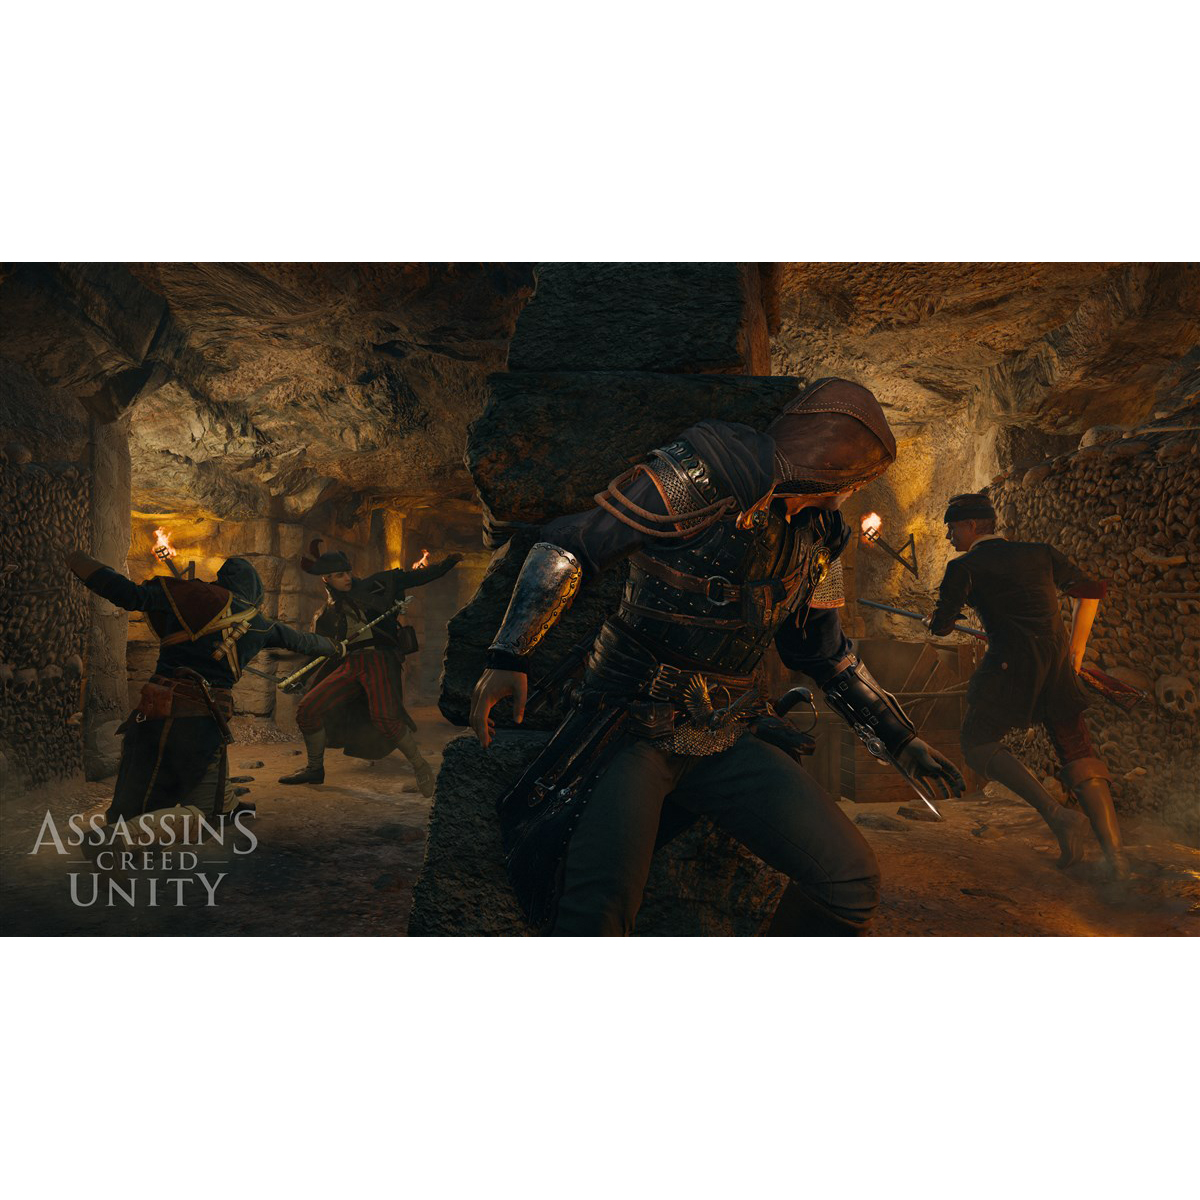 Joc Assassins Creed Unity Greatest Hits pentru Xbox One 4